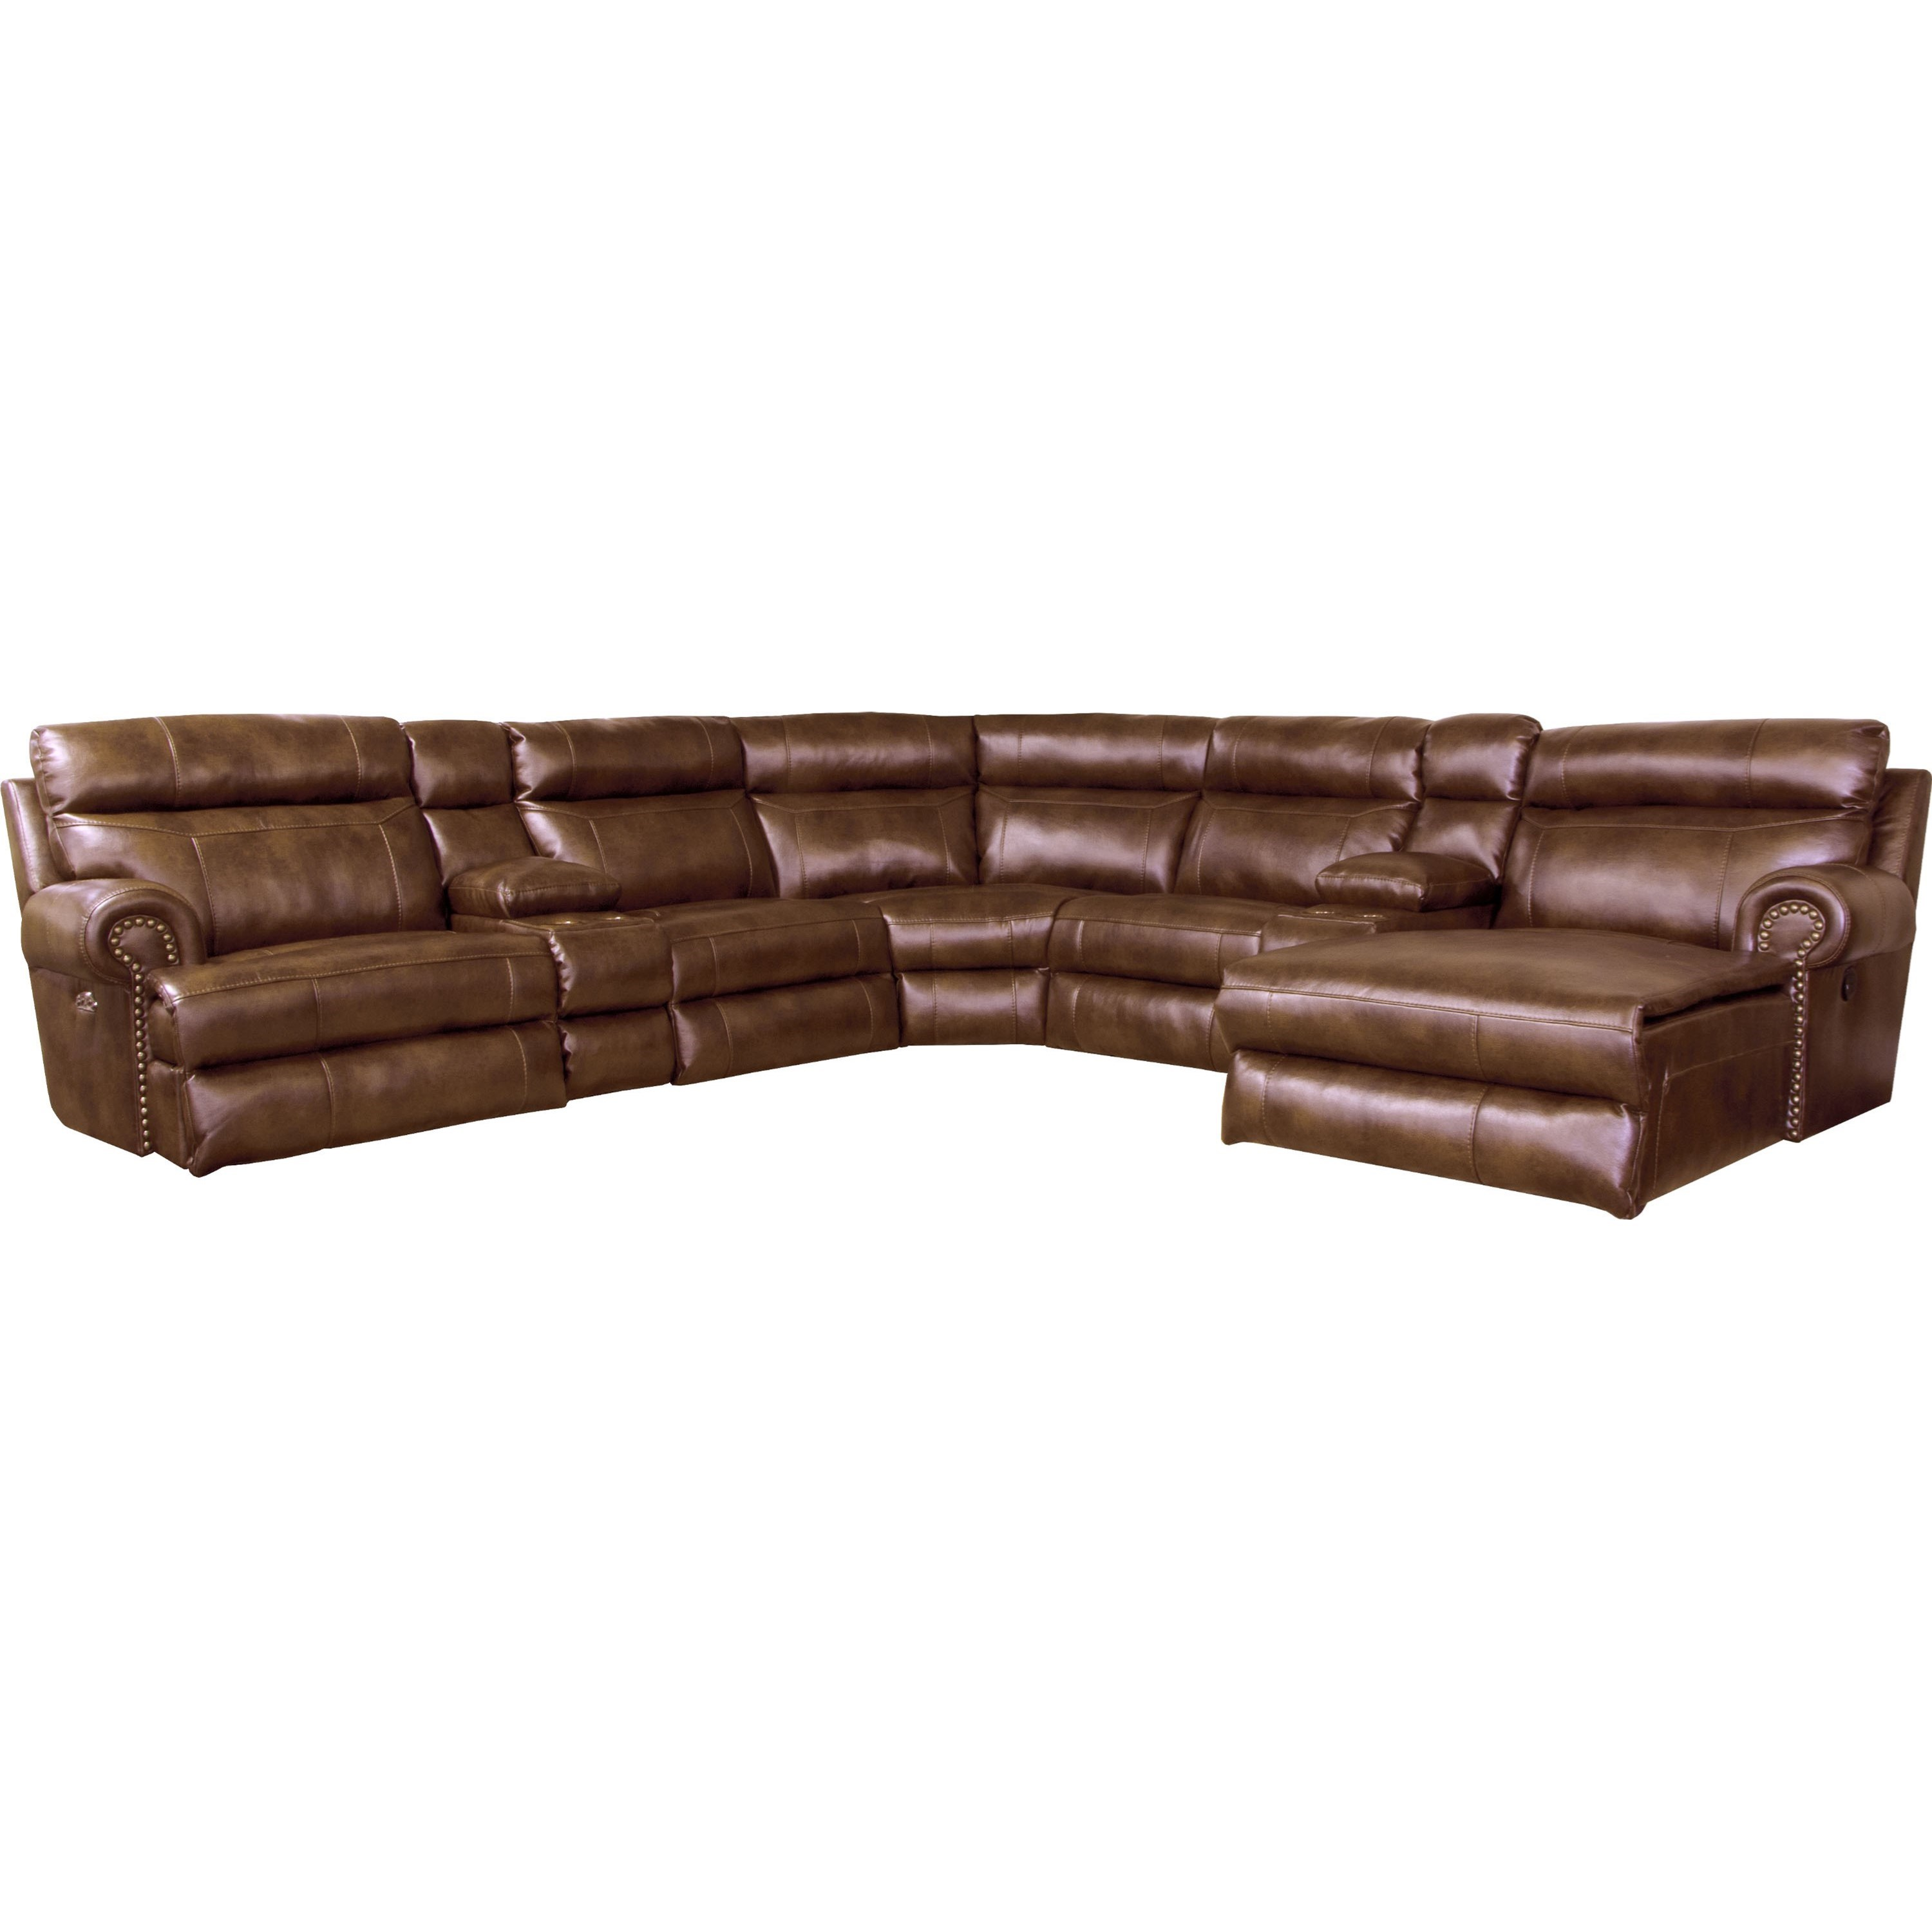 Reclining sectional sofa with 5 seats by catnapper wolf for Sectional sofa seats 10